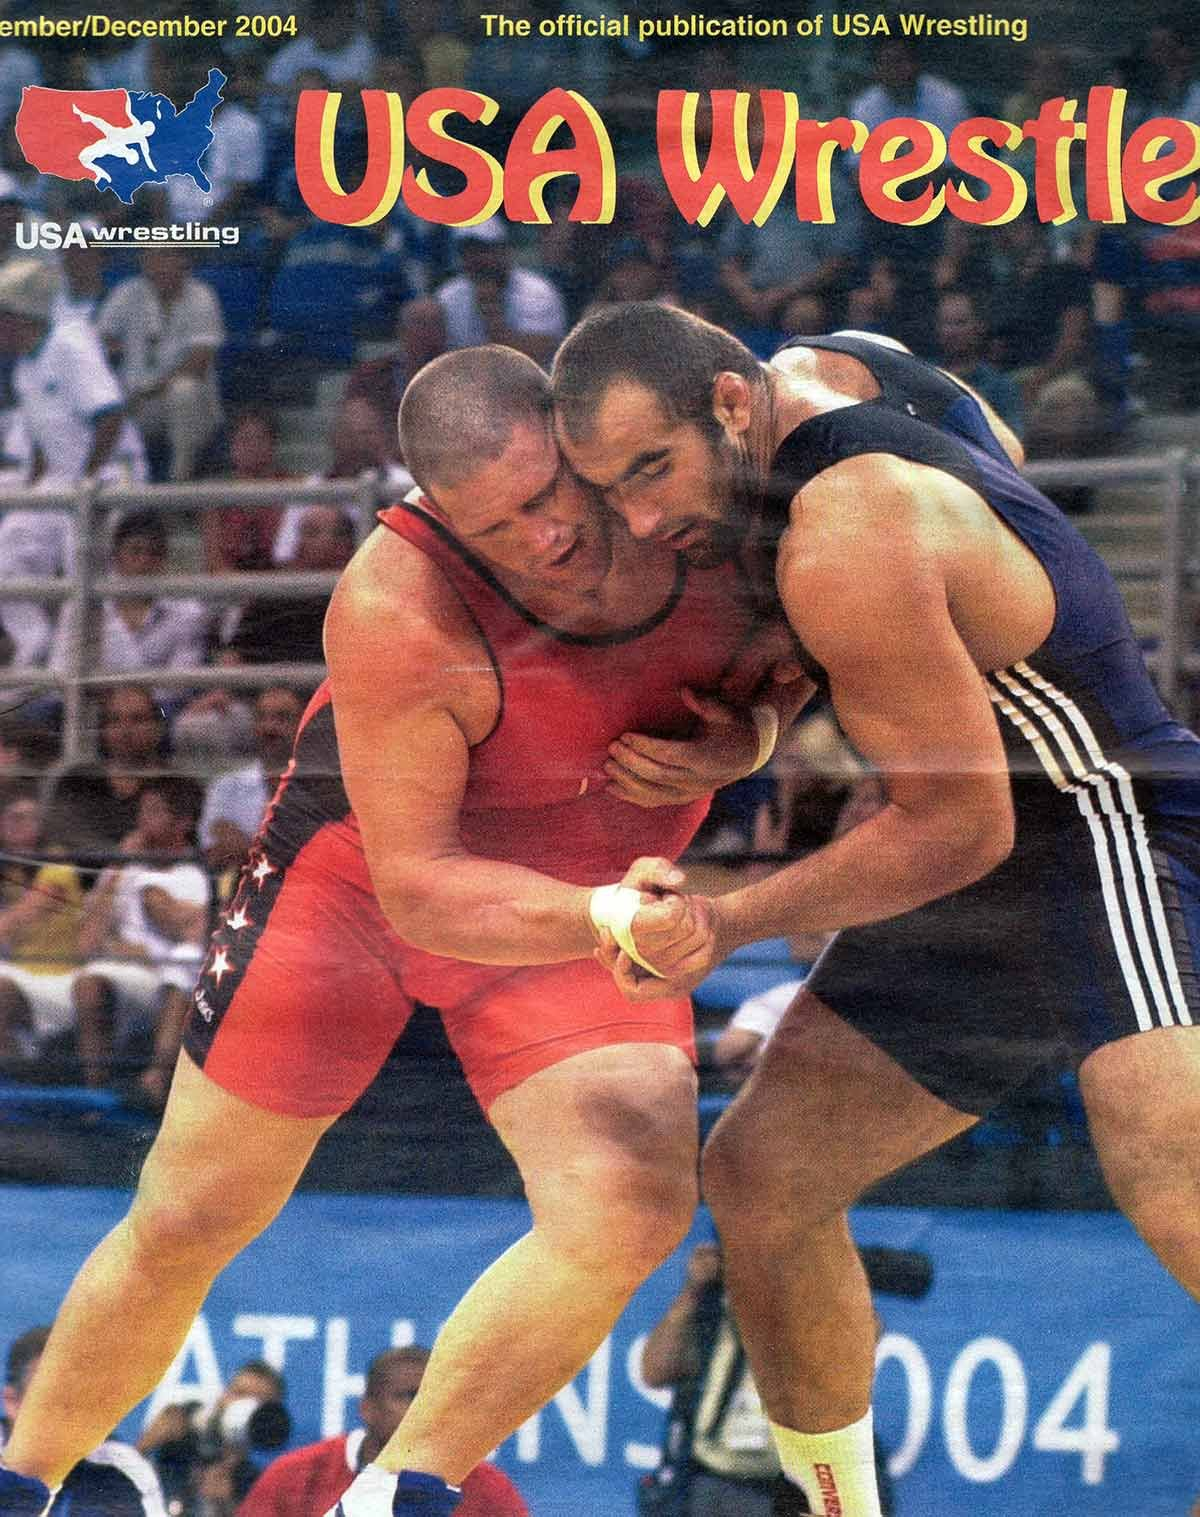 Cover of the magazine USA Wrestler